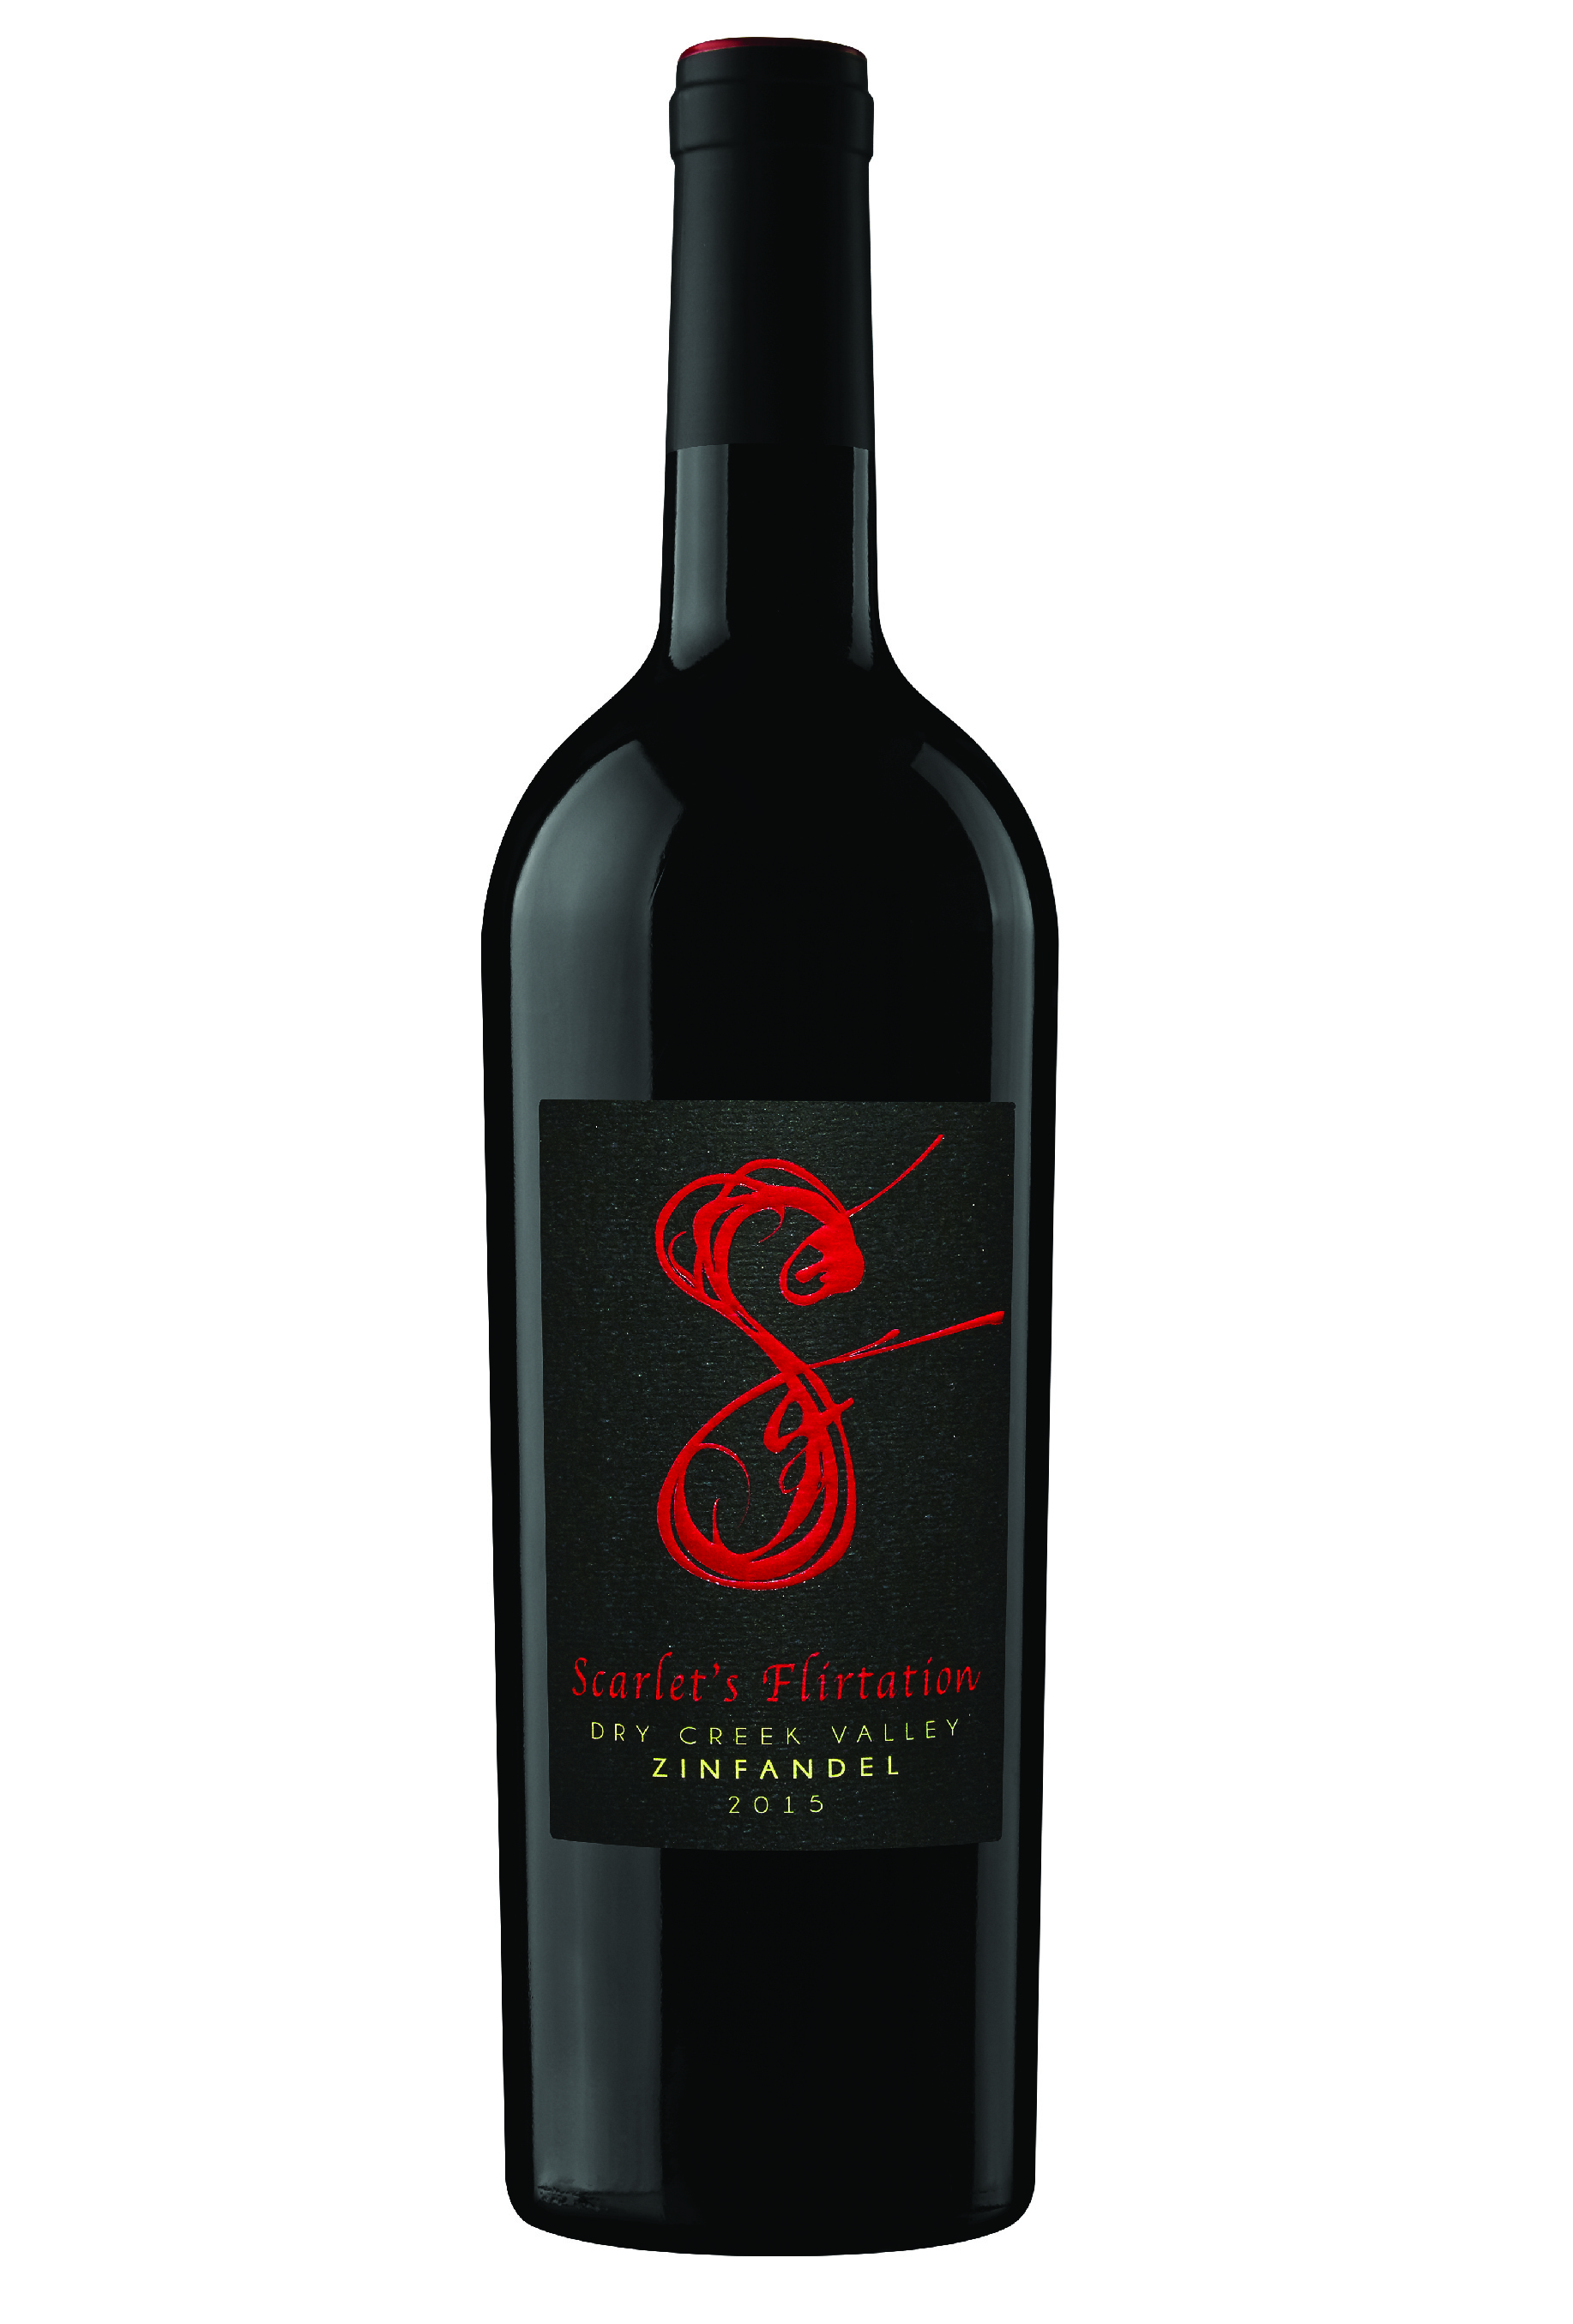 2015 Scarlet's Flirtation Zinfandel, Dry Creek Valley